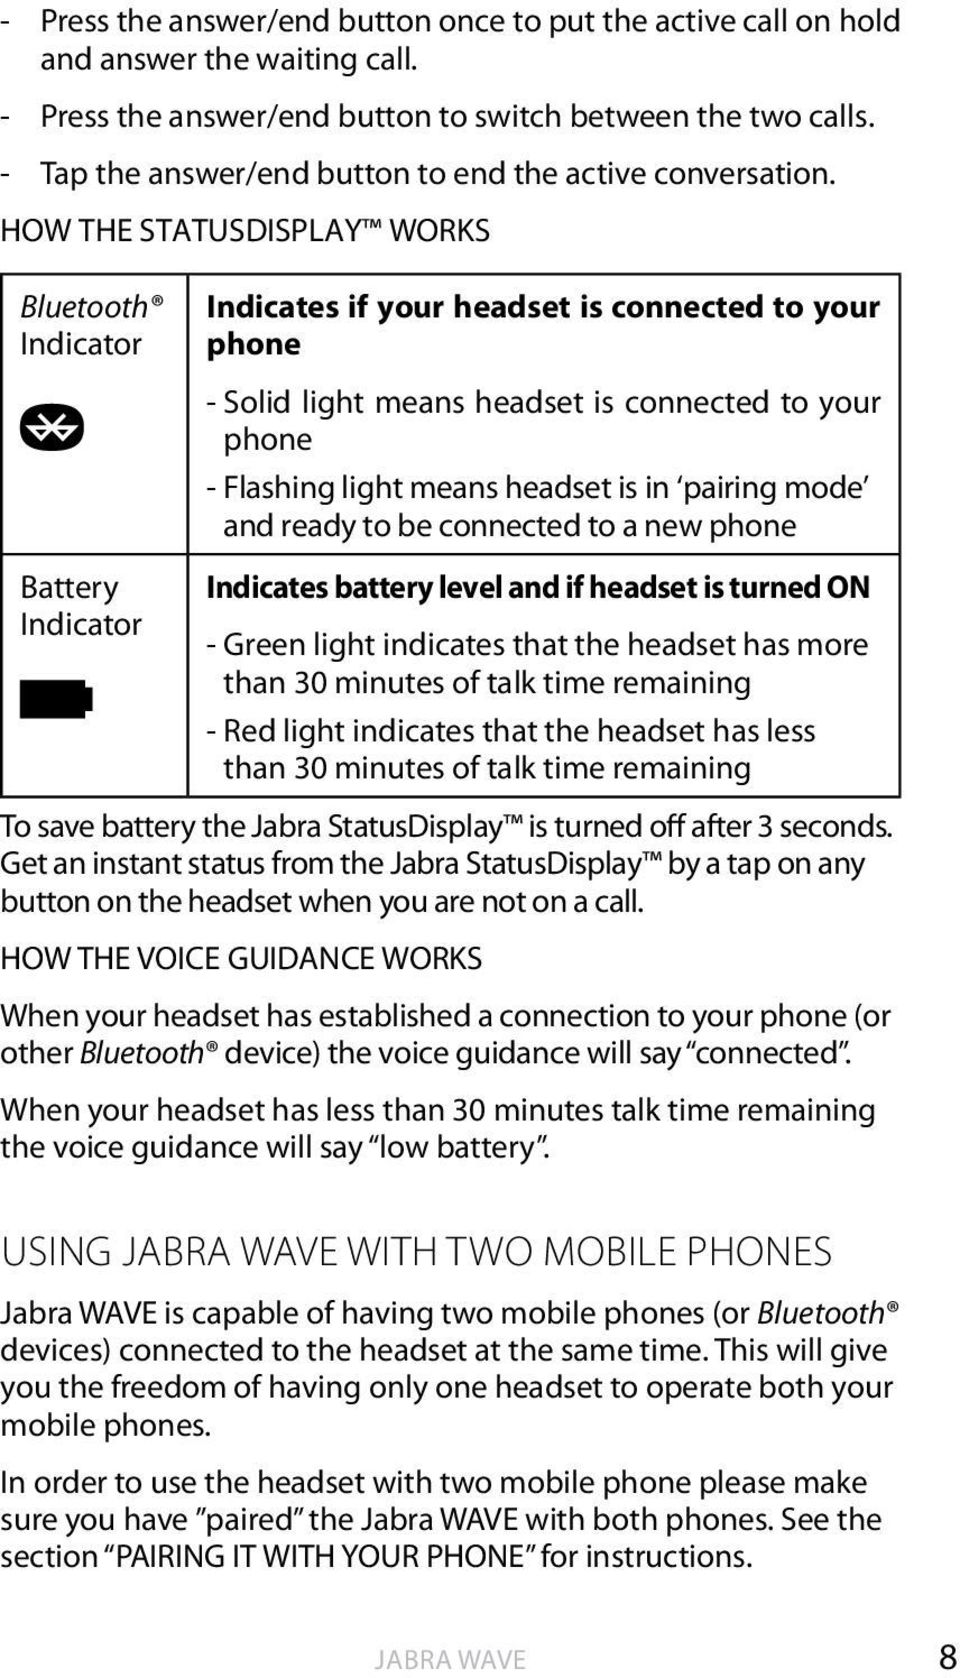 HOW THE STATUSDISPLAY WORKS Bluetooth Indicator Battery Indicator Indicates if your headset is connected to your phone - solid light means headset is connected to your phone - Flashing light means